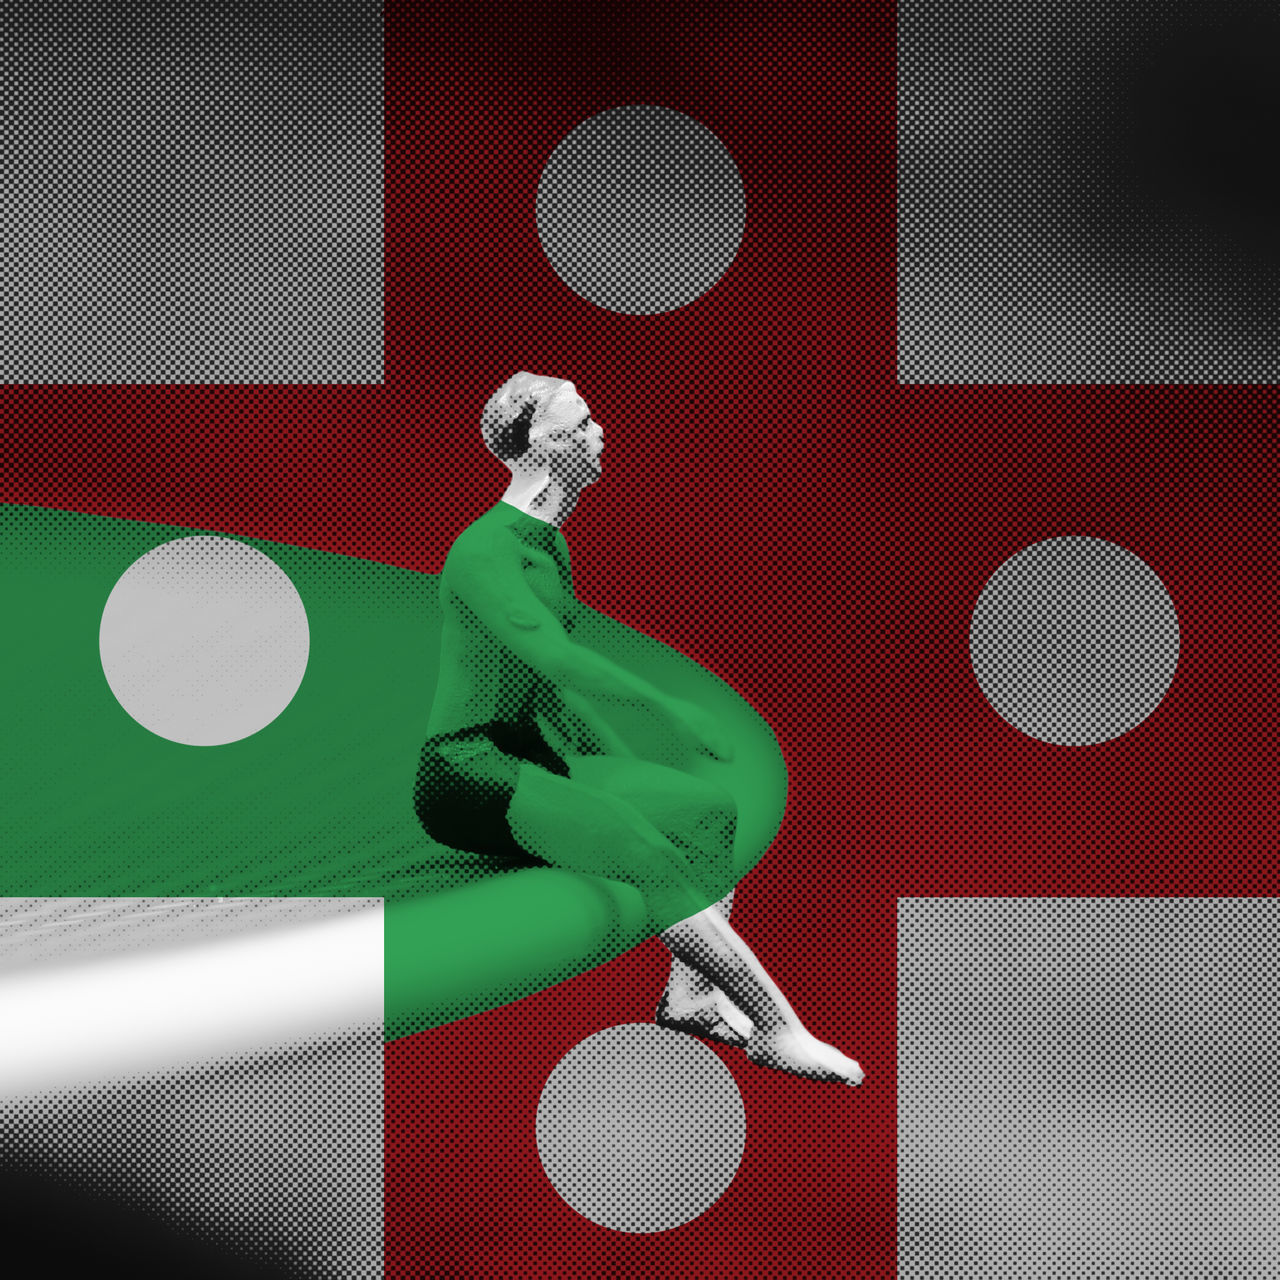 alienation Abstract Alienation ArtWork Close-up Creativity Cross Day Design Digital Art Dot Edge Figure Green Color Grid Pattern Hole Indoors  Multi Colored Raster Red Color Round Screen Sitting Man Square Table Textured